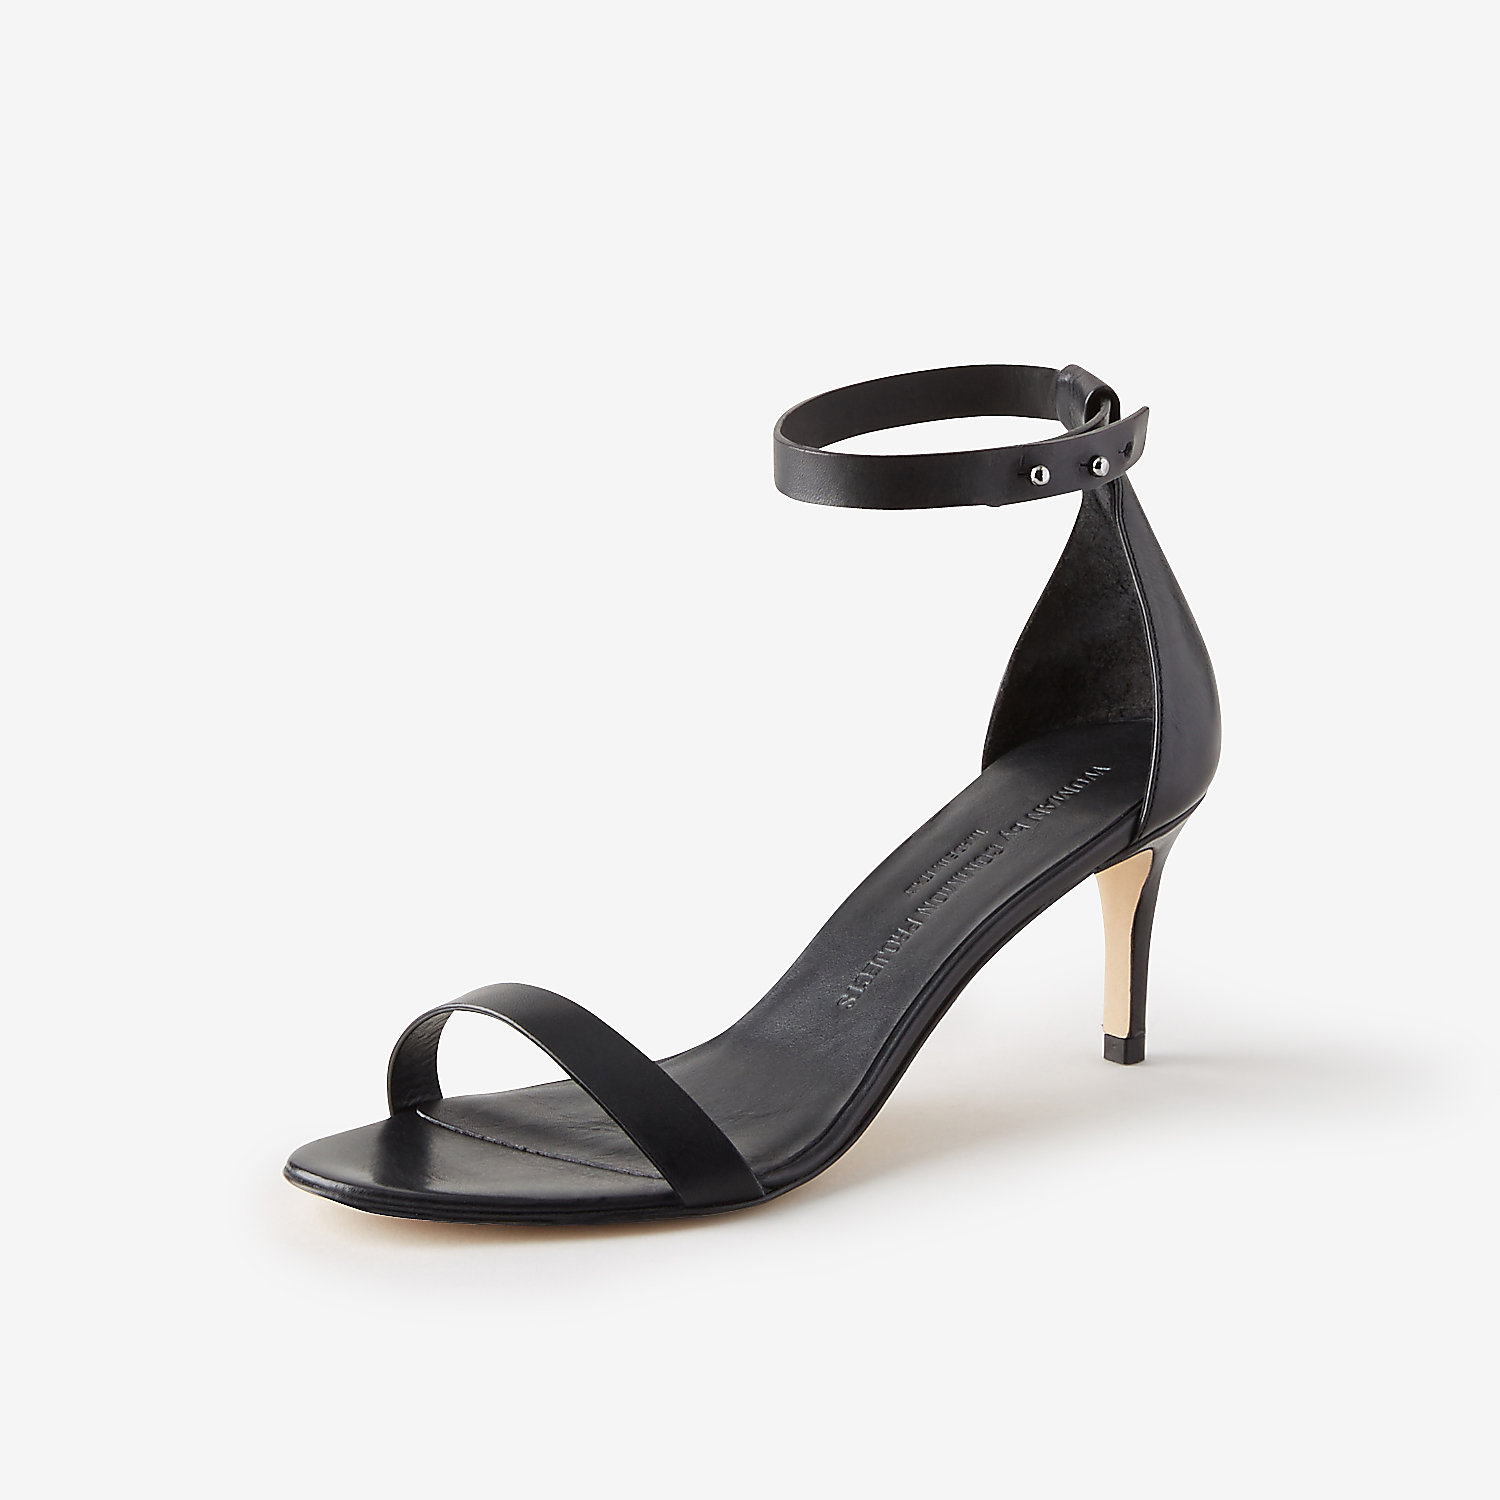 Strappy Low Heels bfCxbW5V